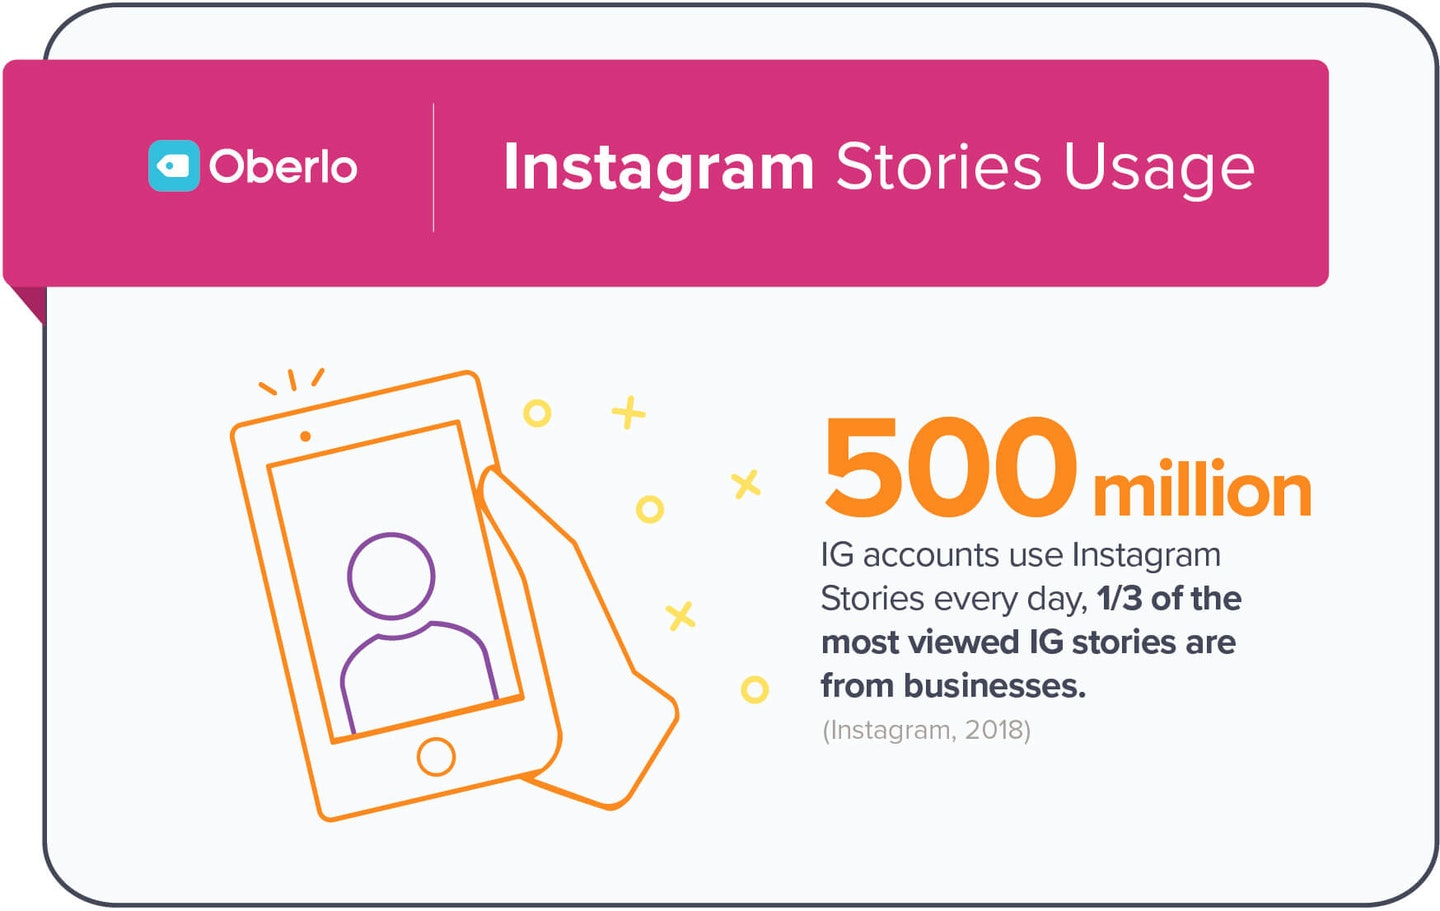 Instagram Stories Usage:  500 million users IG accounts use Instagram stories every day, 1/3 of the most viewed IG stories are from business. (Instagram, 2018)